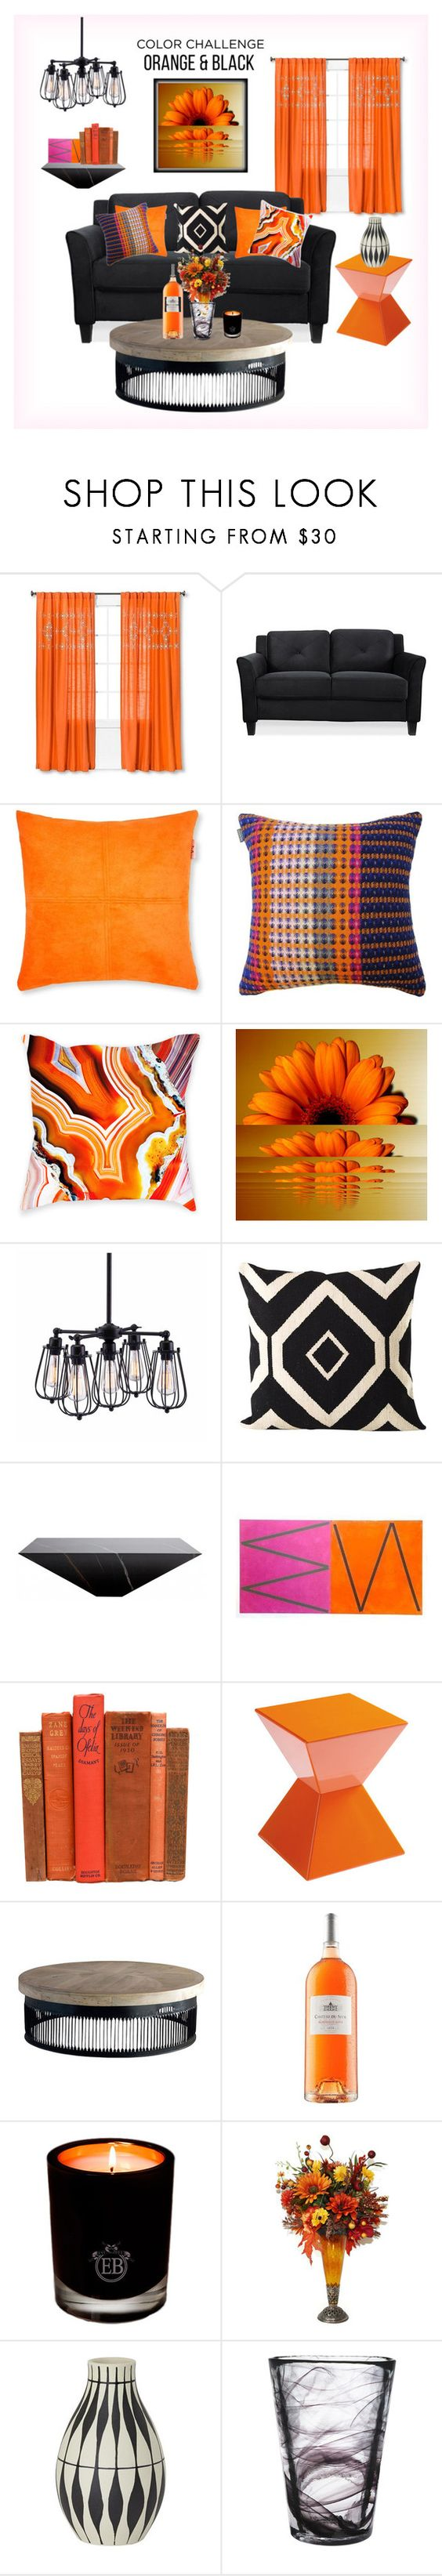 """""""Home Decor - Orange & Black"""" by fashnbug ❤ liked on Polyvore featuring interior, interiors, interior design, home, home decor, interior decorating, Threshold, Madura, Claire Gaudion and Zuo"""